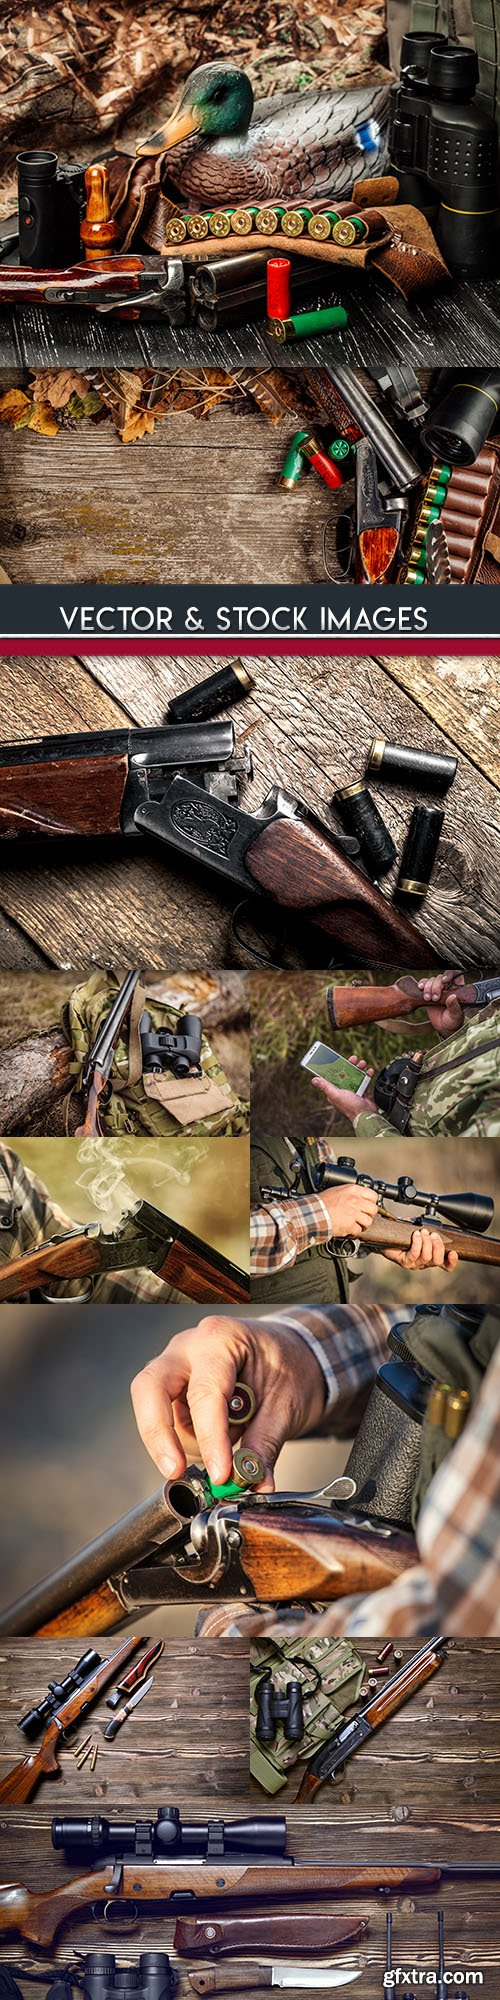 Hunting autumn nature weapons and ammunition